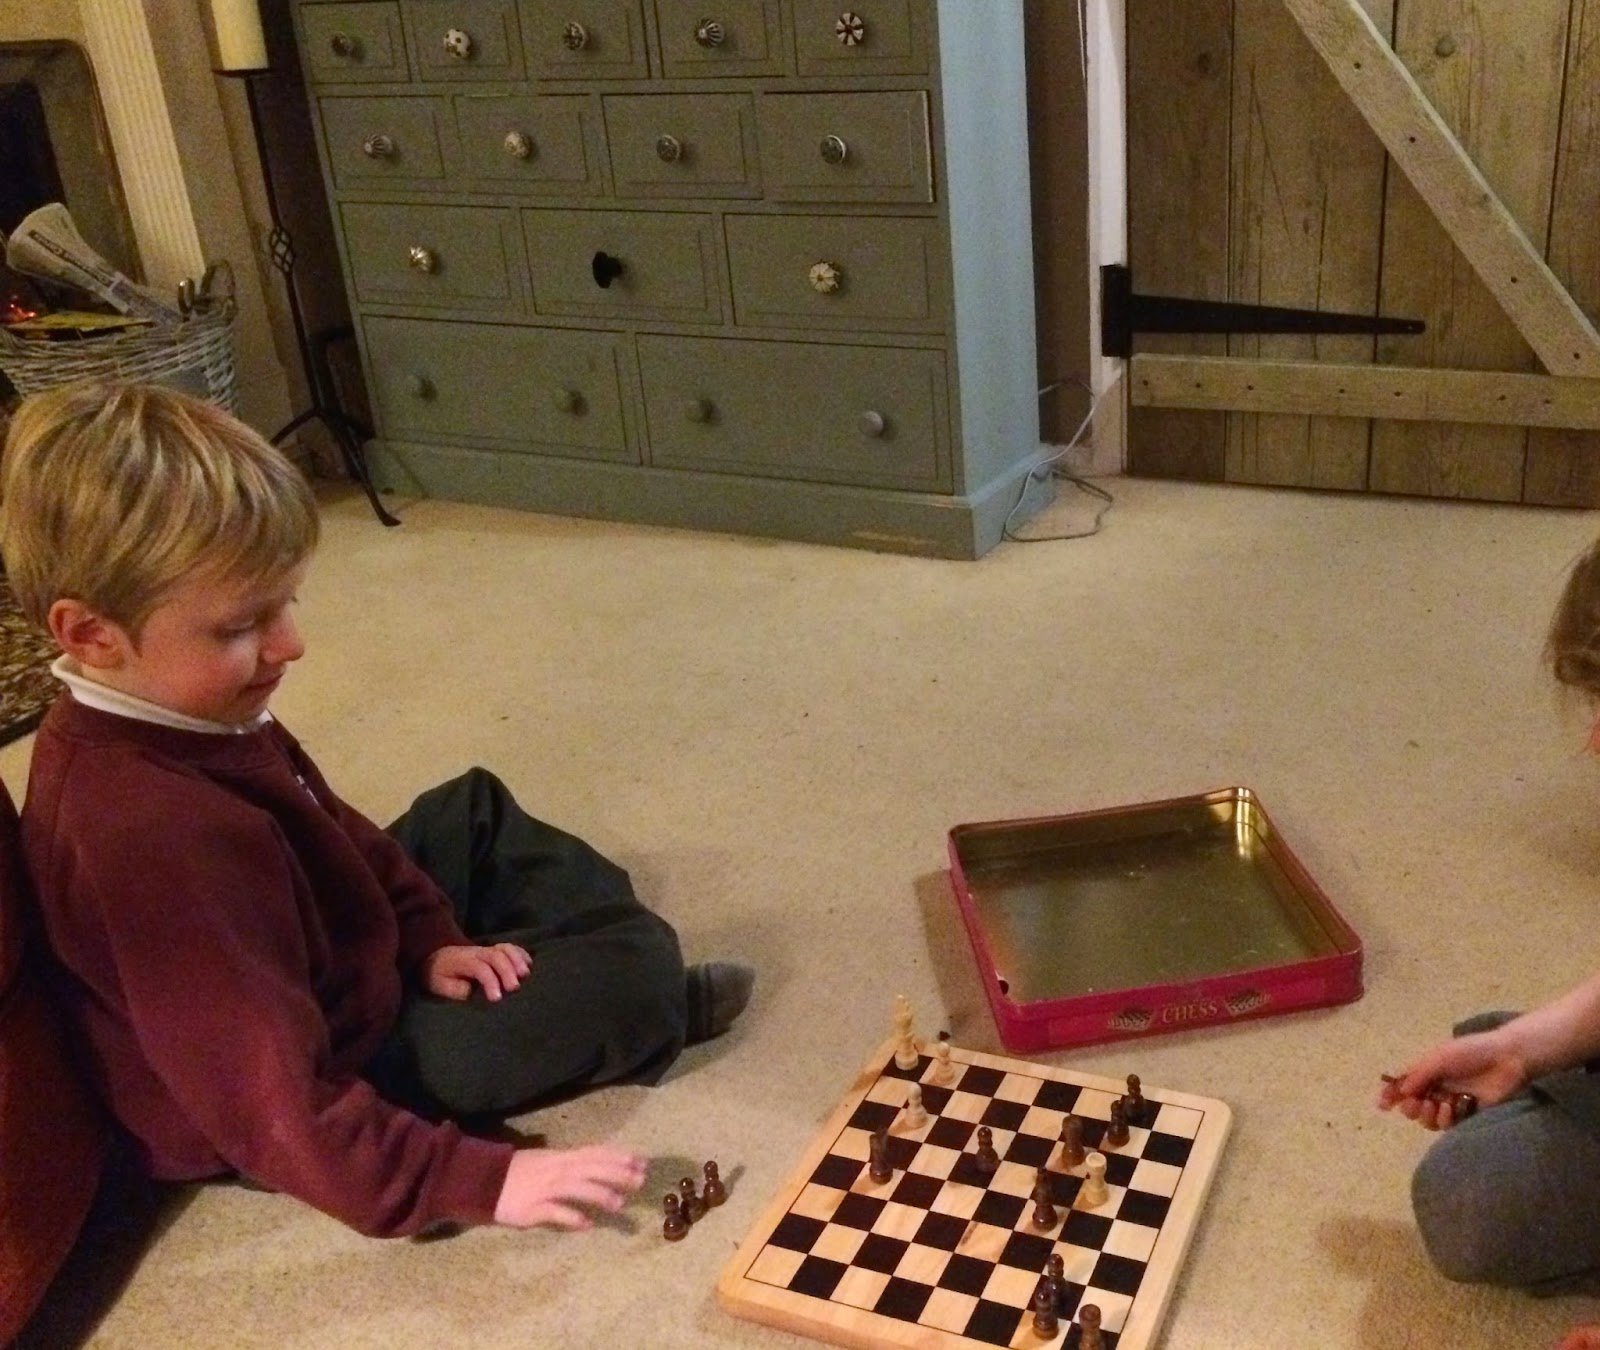 6-year-old playing chess